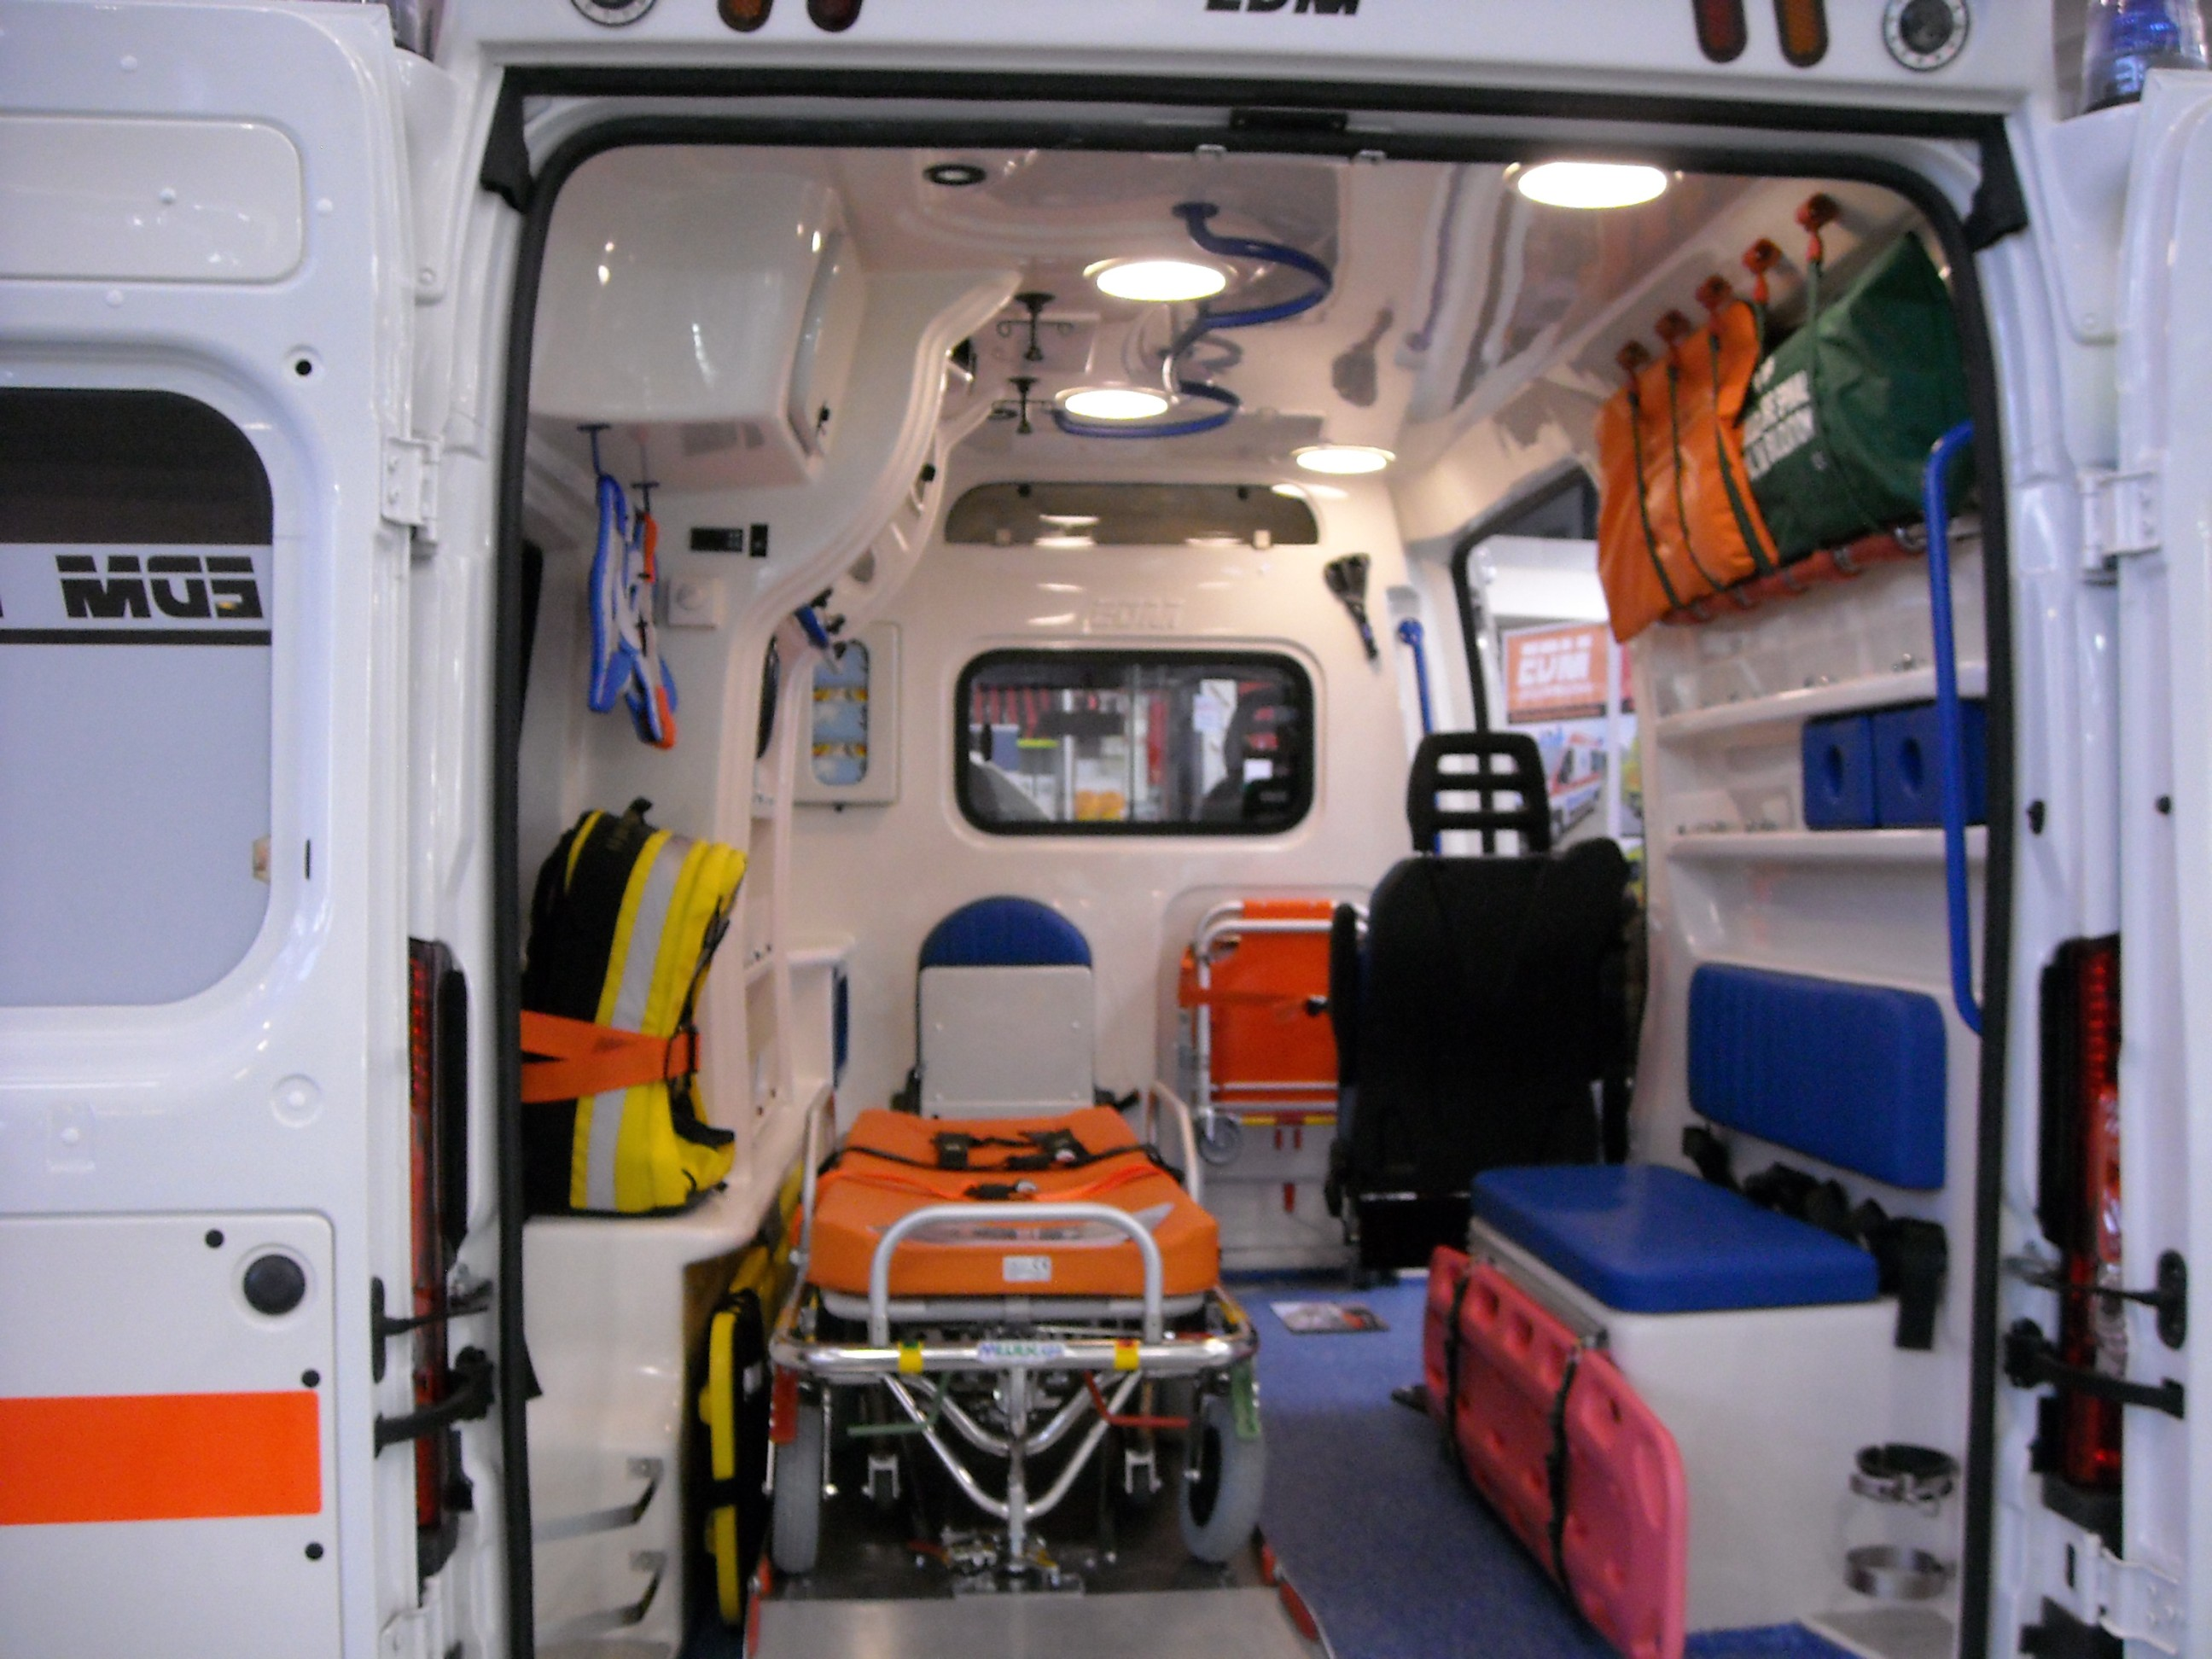 22628ccbae L' Ambulancier : le site de référence Ambulancier : la désinfection de l'ambulance